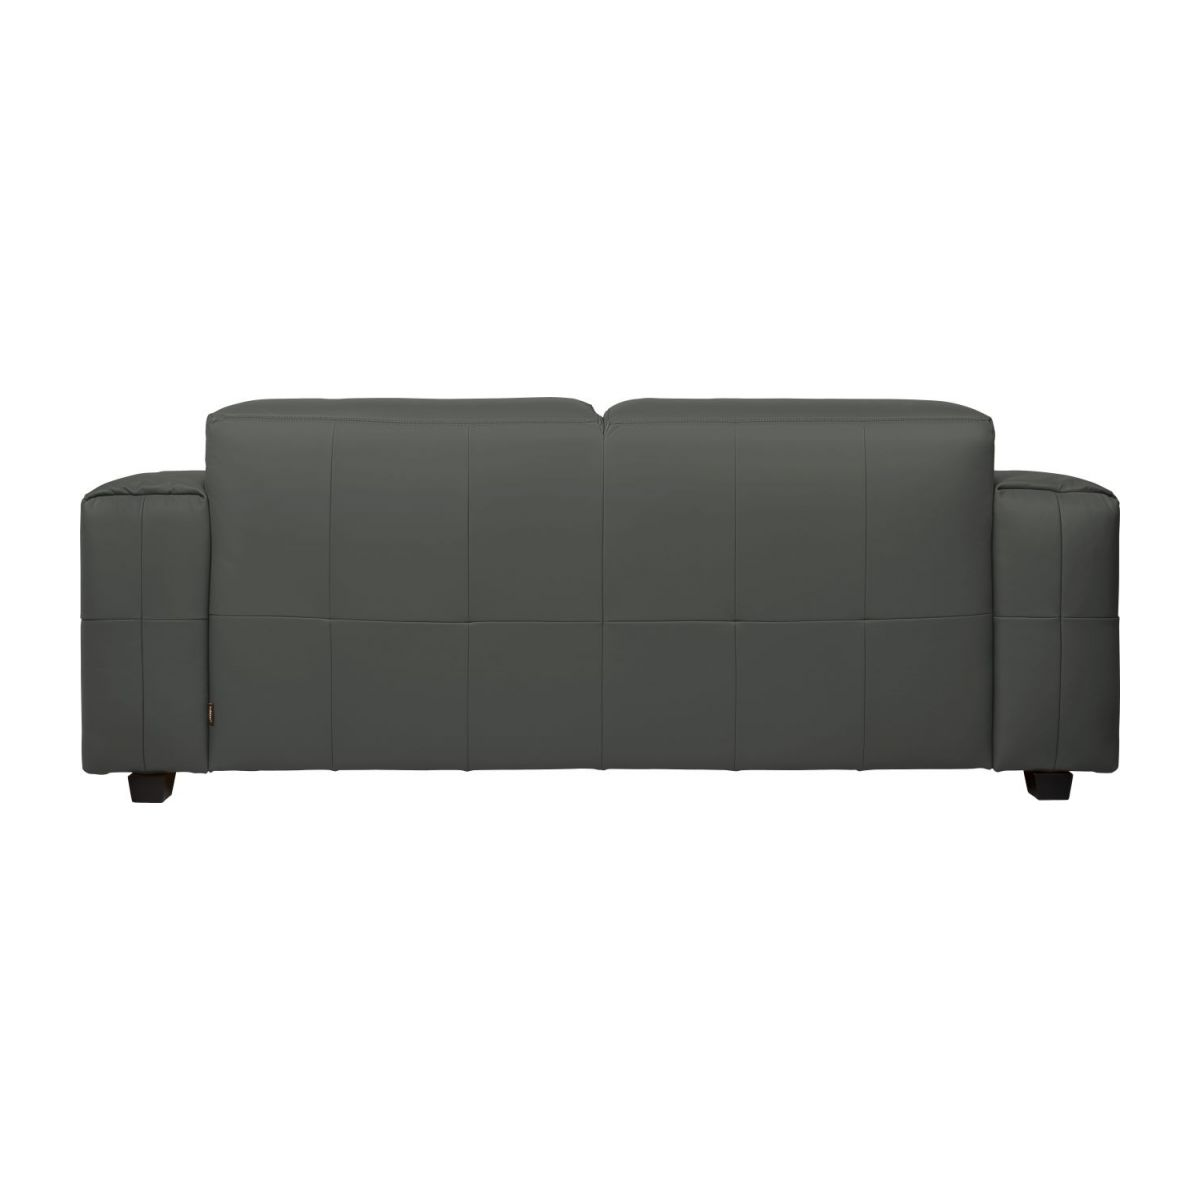 4 seater sofa in Savoy semi-aniline leather, grey n°4